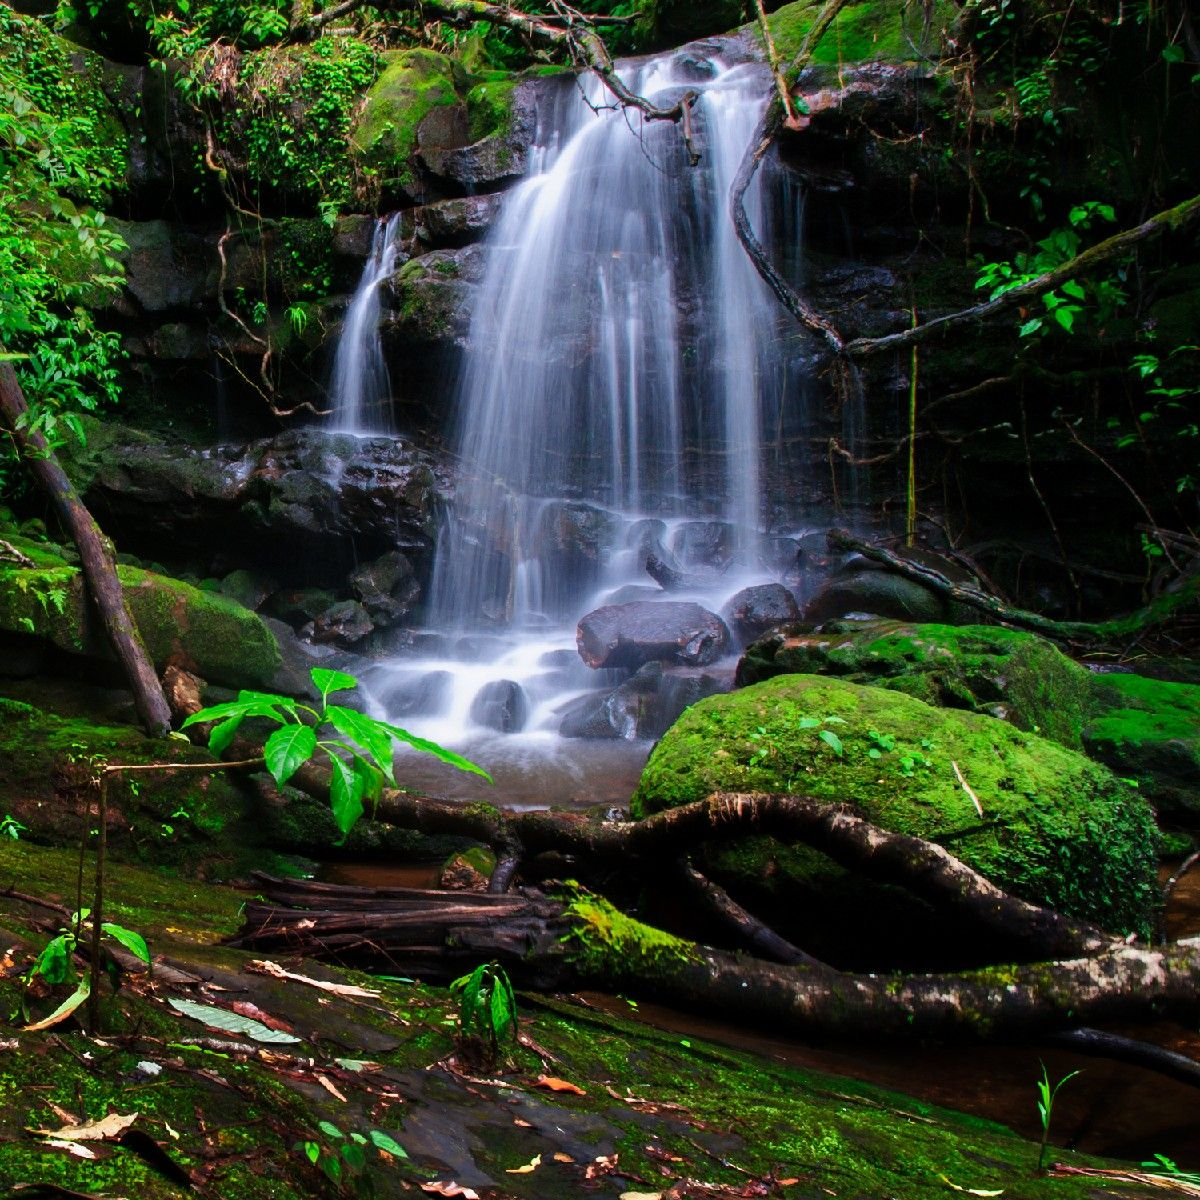 Blue Waterfall Wall Mural Nature Landscapes A tranquil